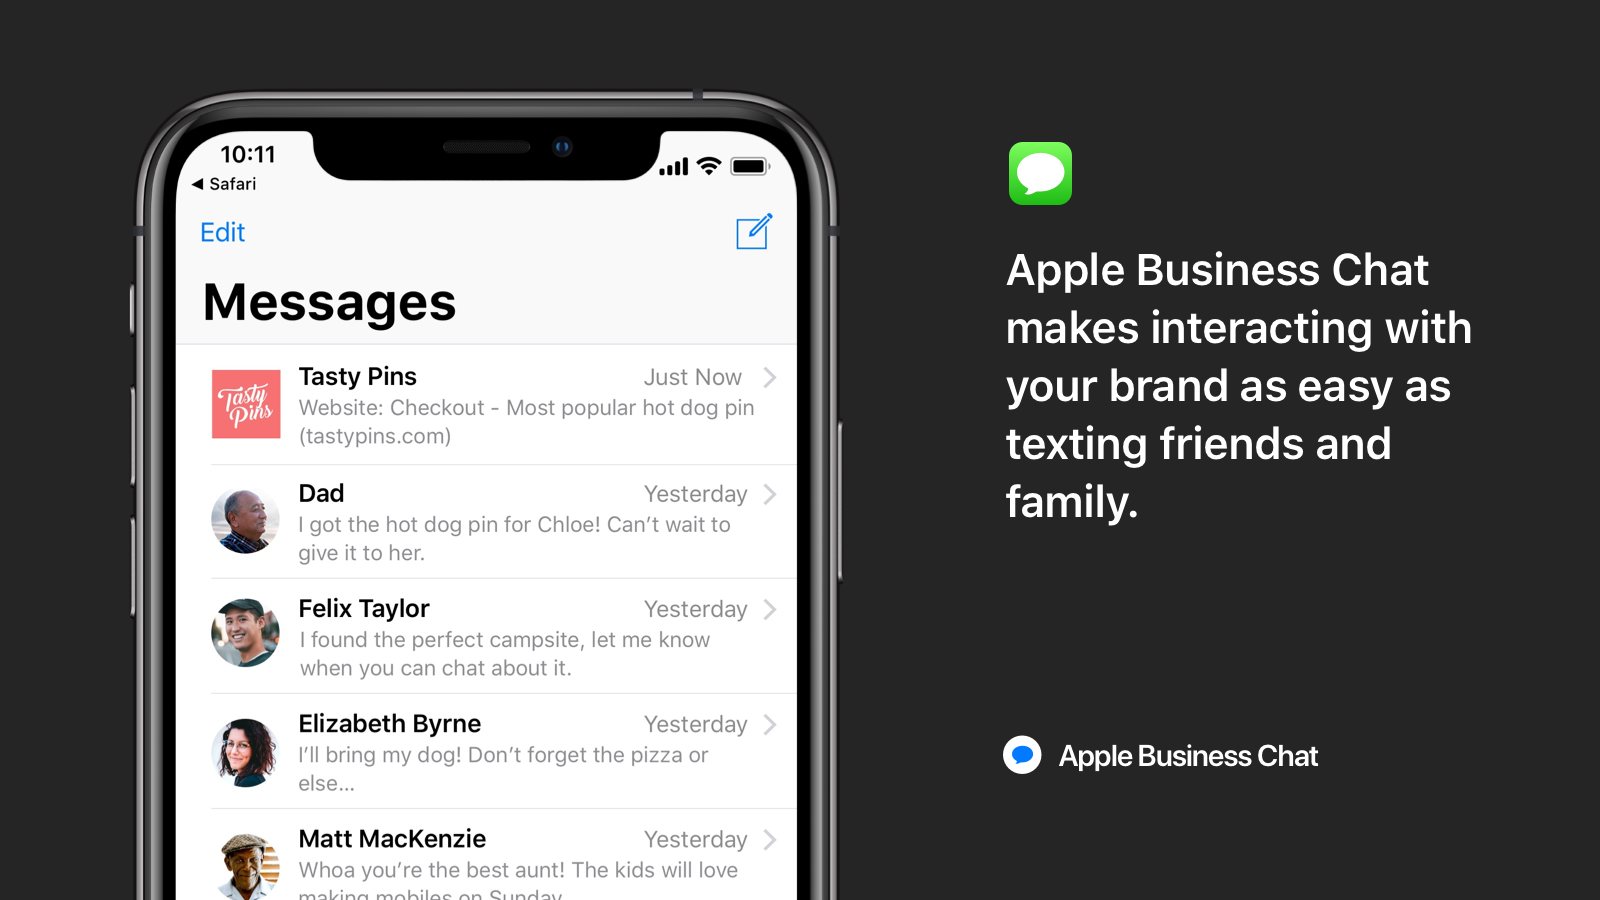 Shopify Live Chat by Apple Business Chat